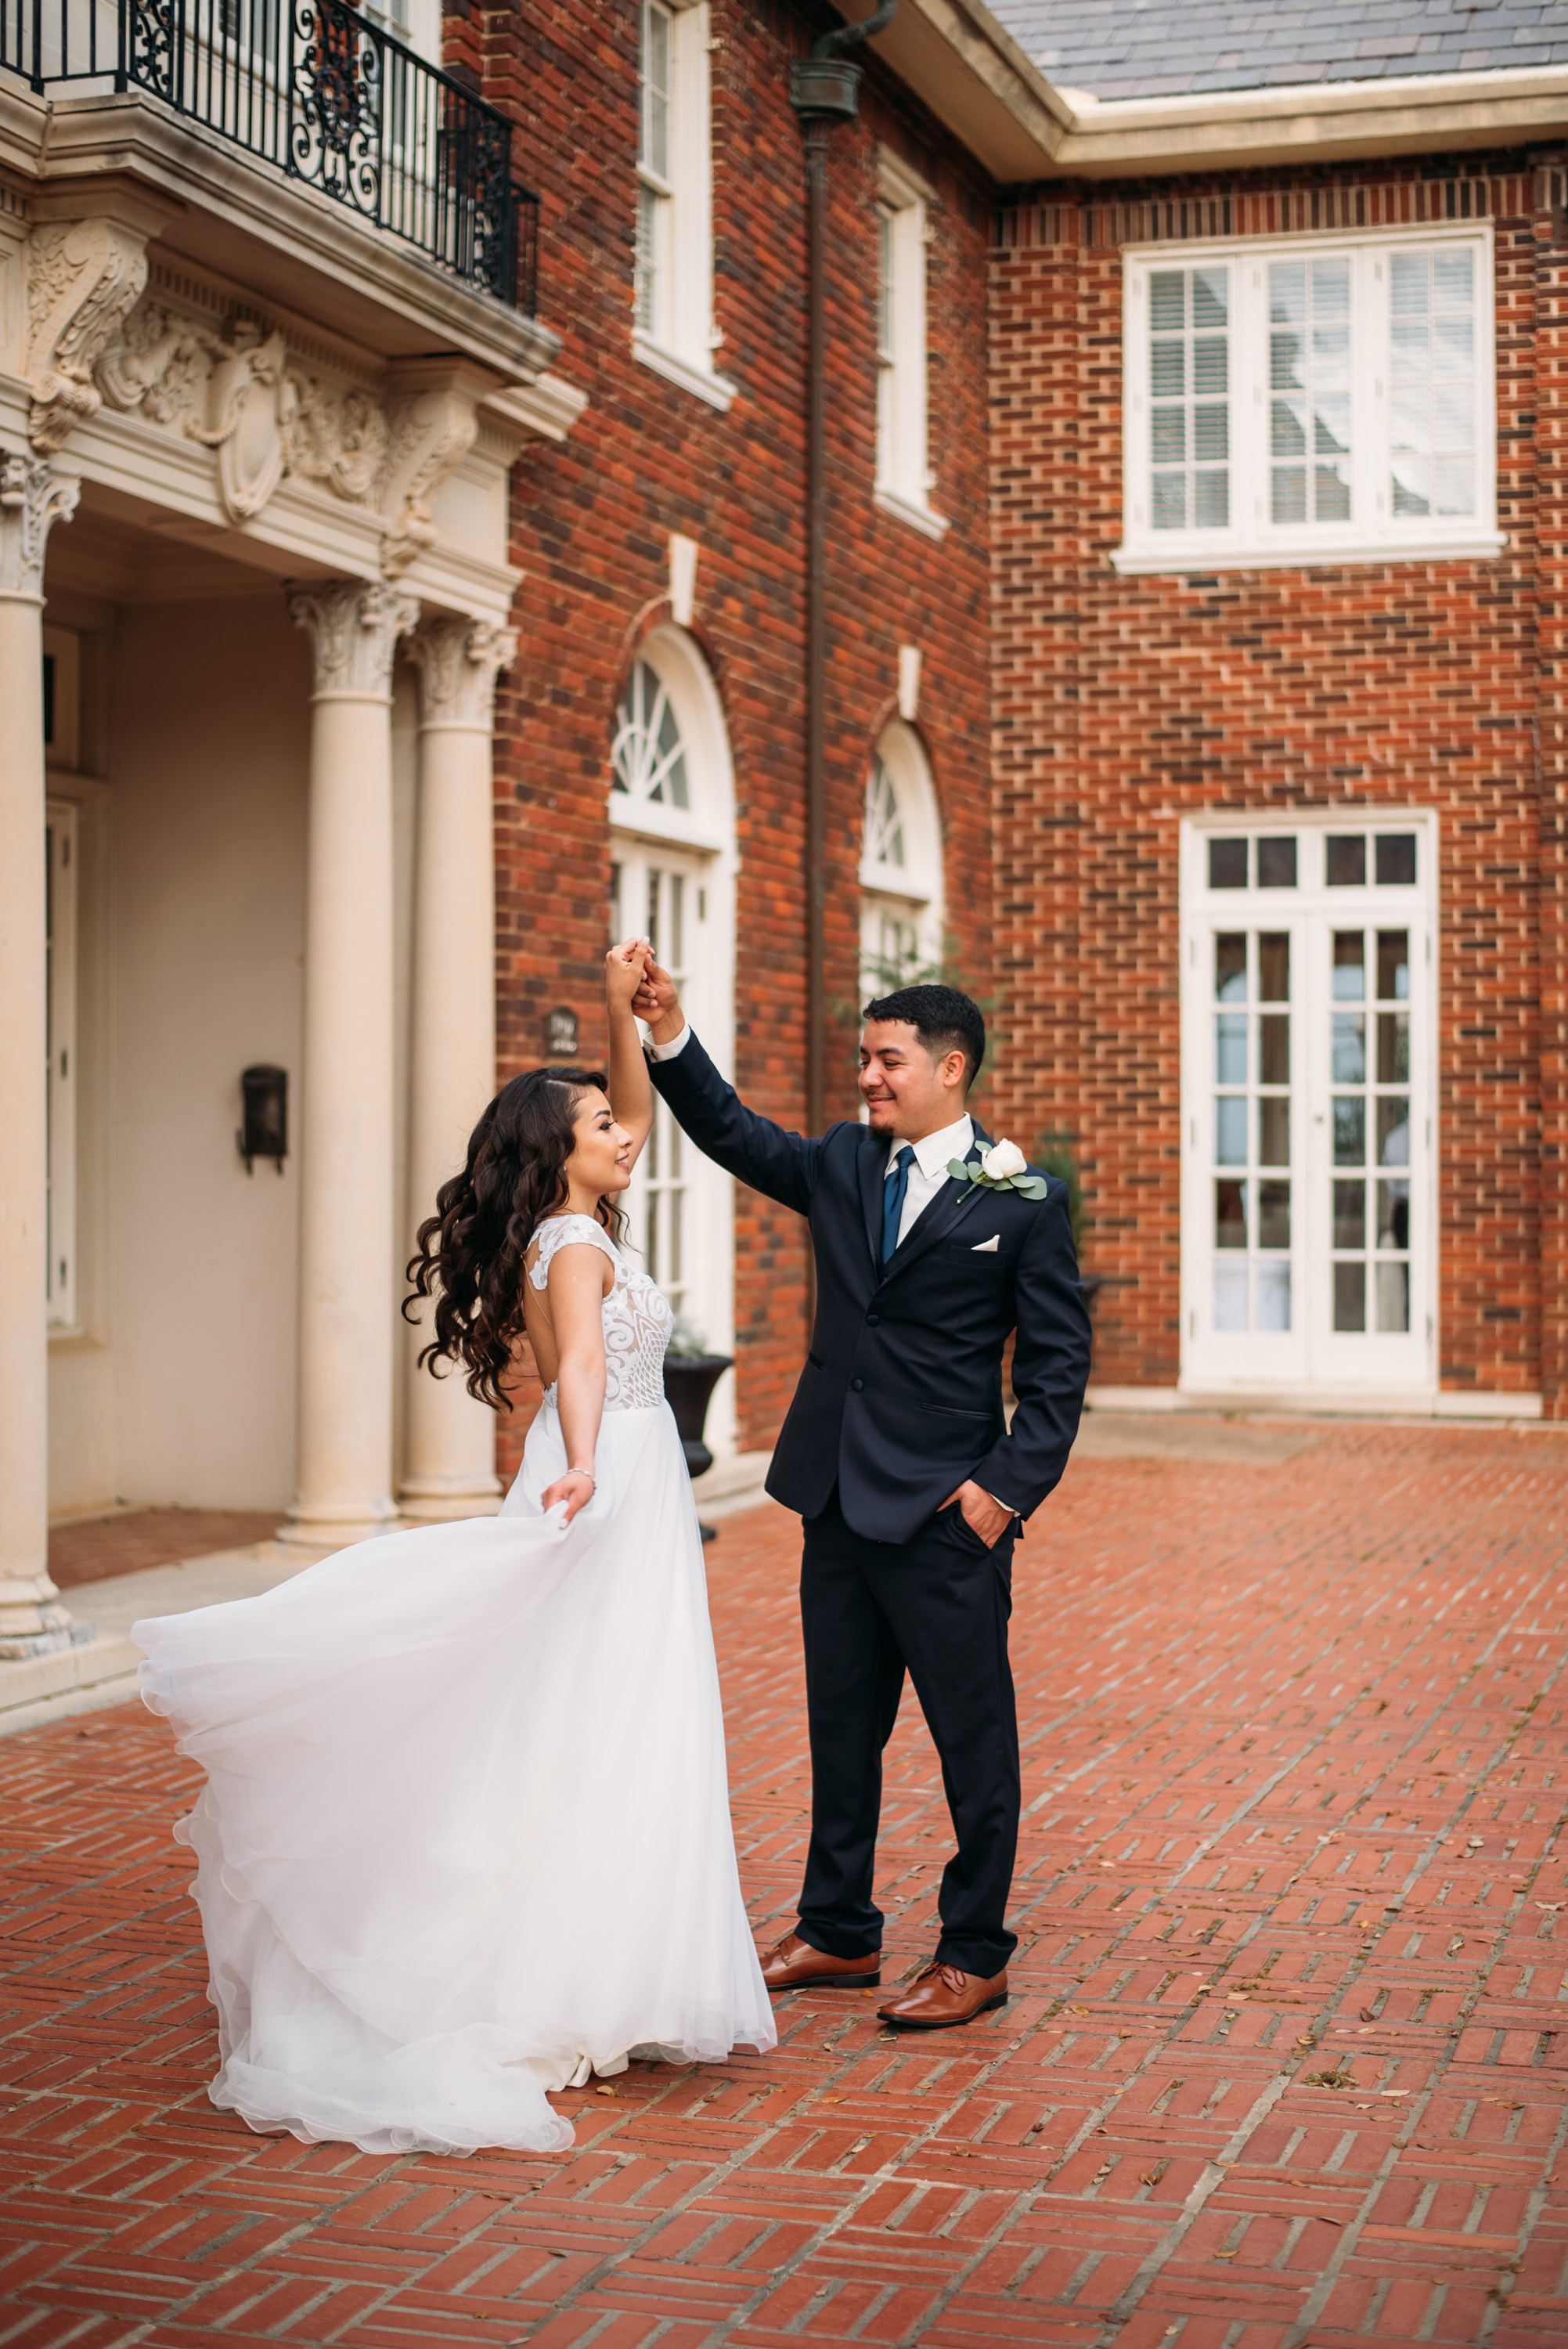 AstinMansion_CollegeStation_WeddingPhotographer044.jpg